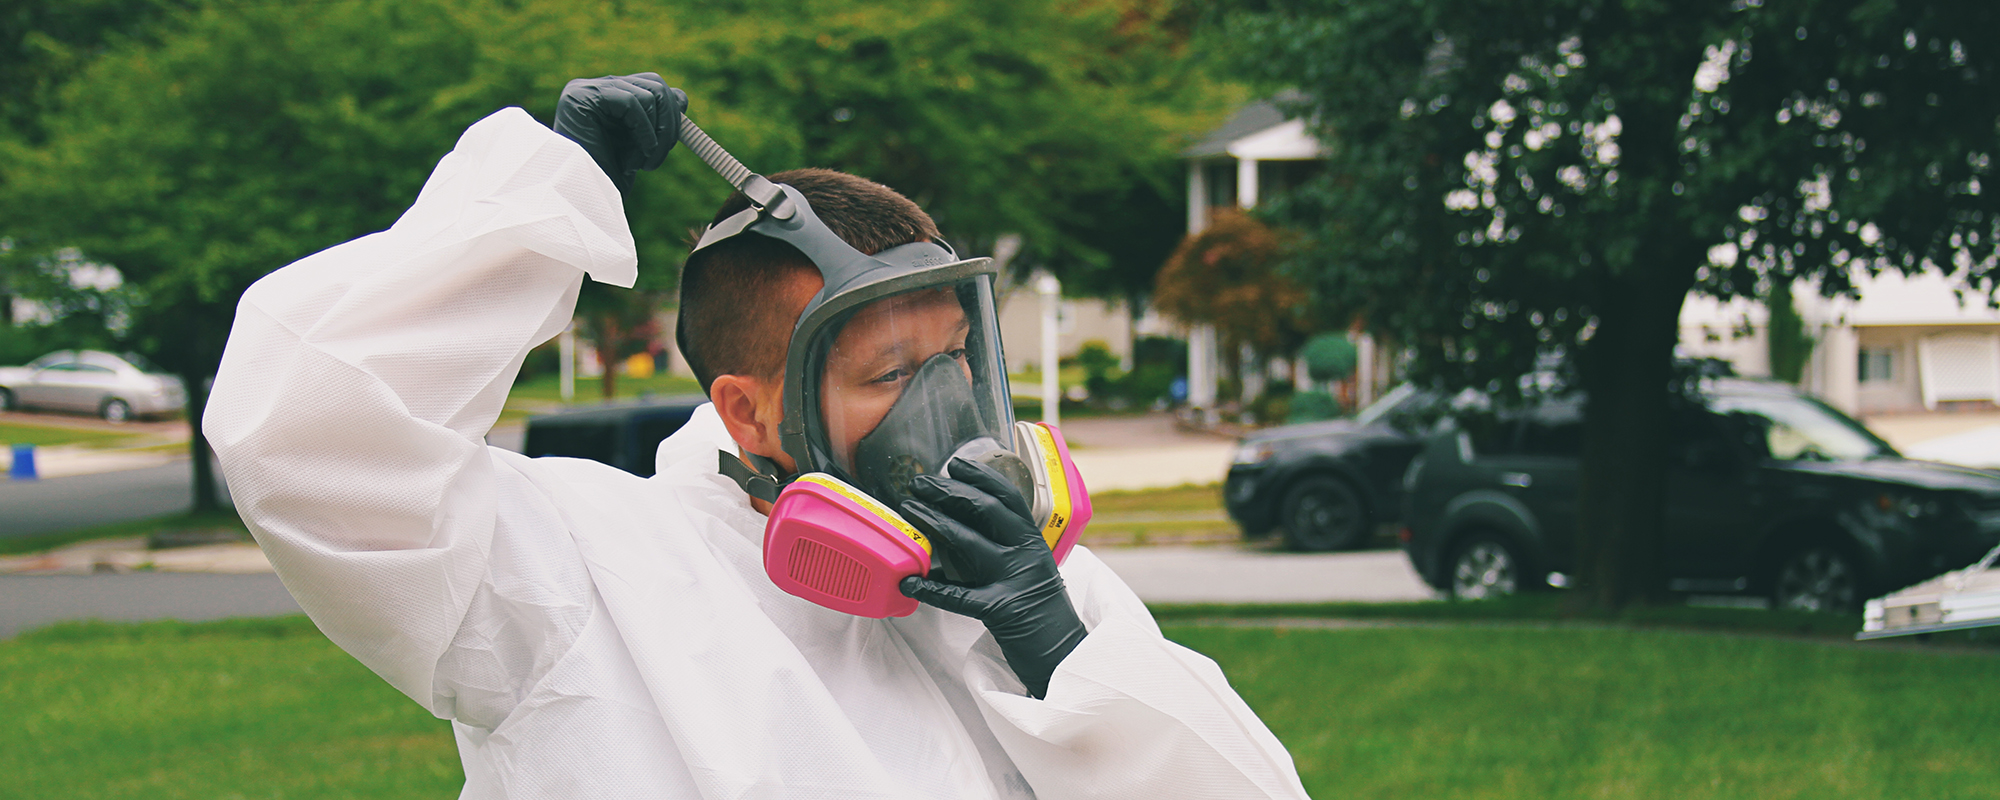 mold removal technician south jersey